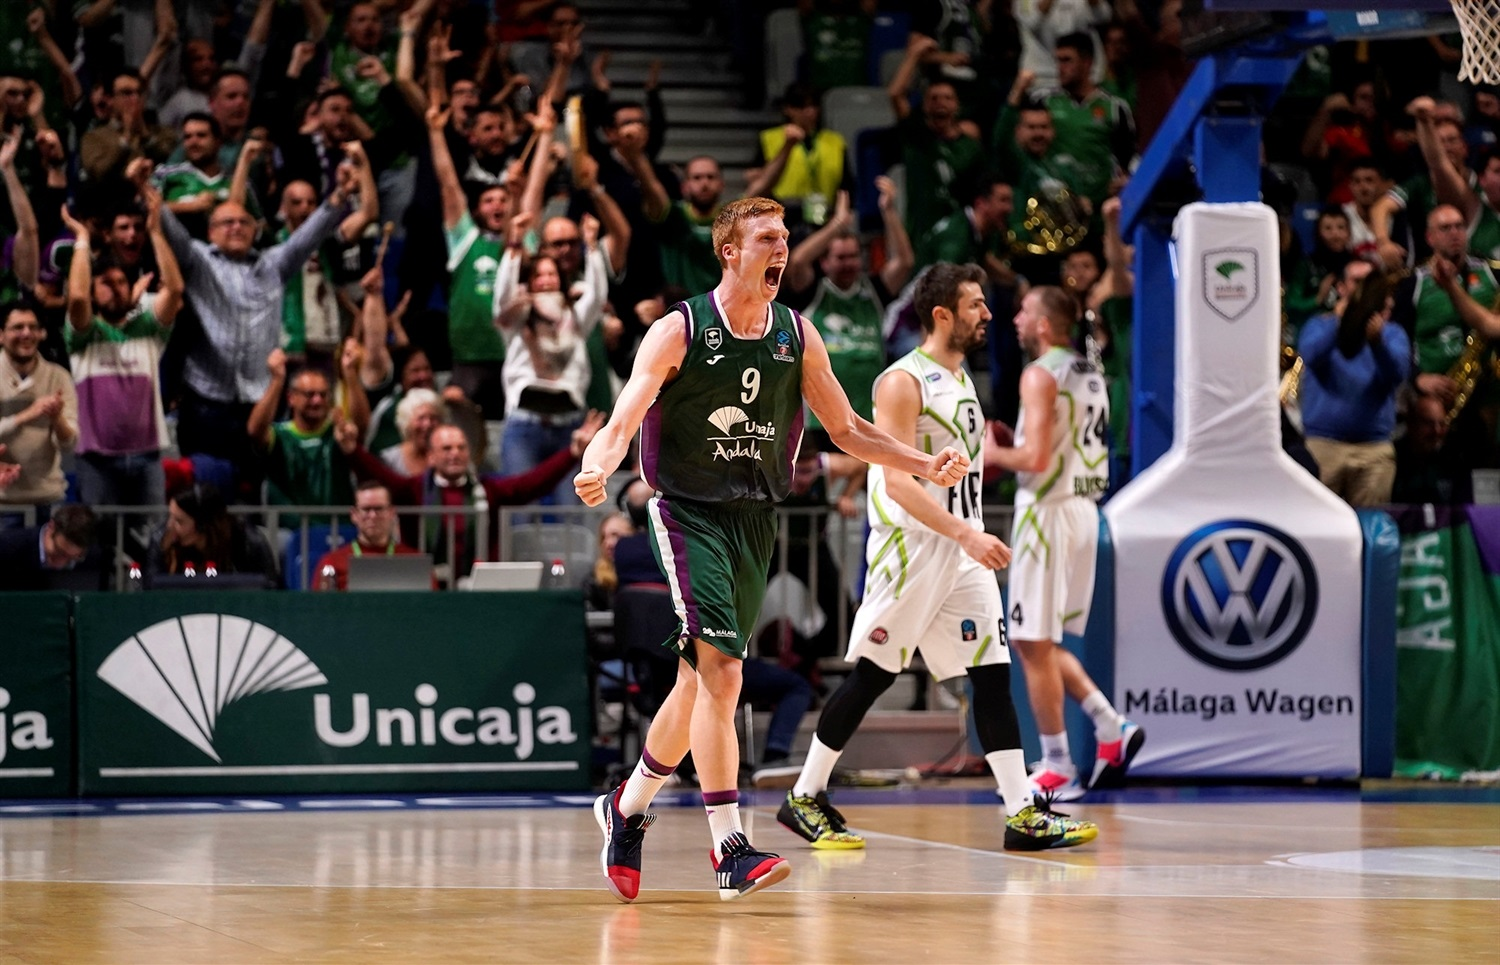 Alberto Diaz celebrates - Unicaja Malaga (photo Mariano Pozo - Unicaja) - EC19